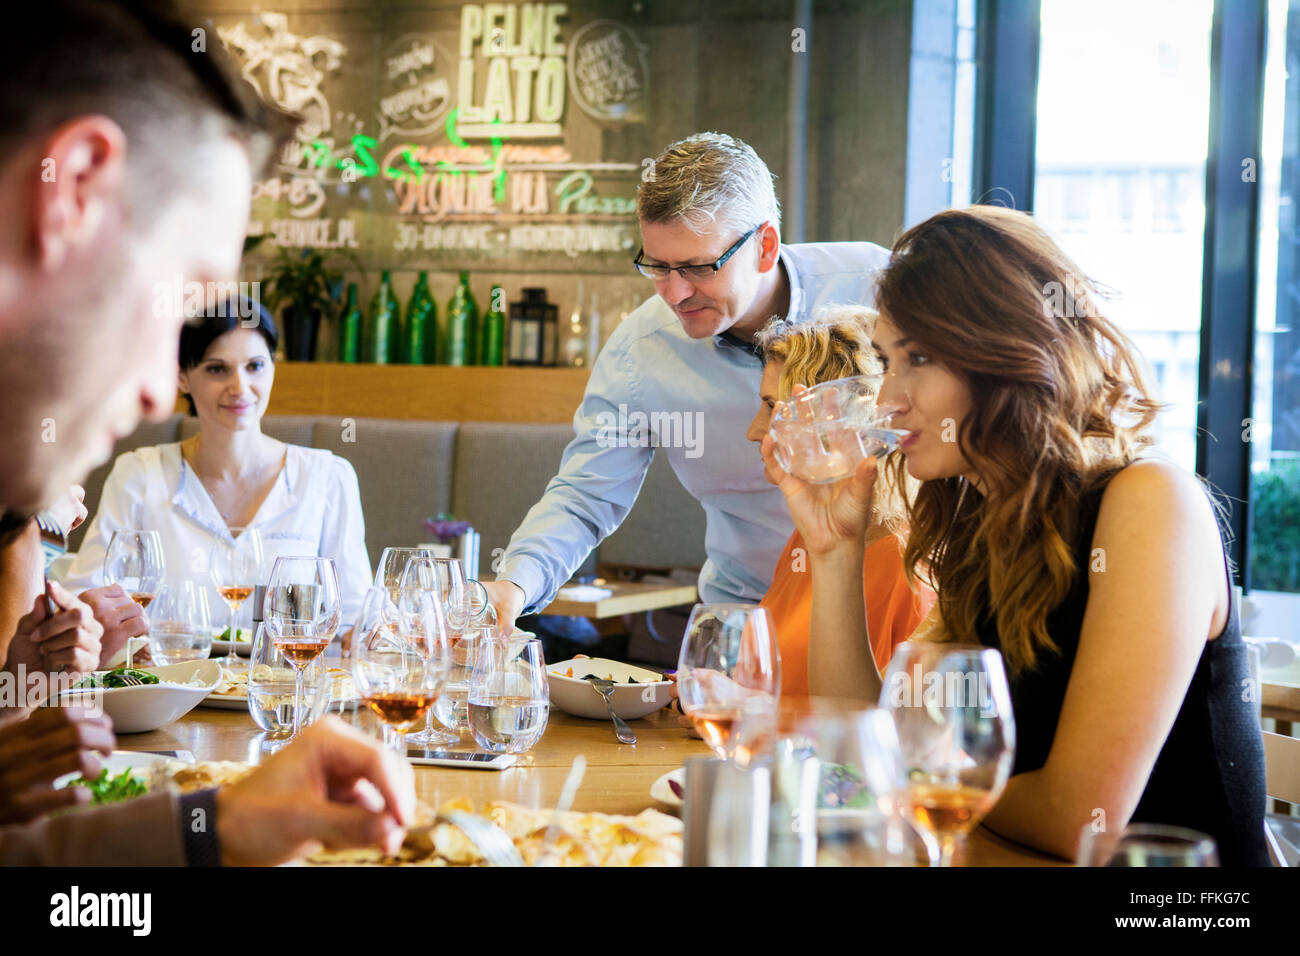 Group of friends on dinner party in restaurant - Stock Image